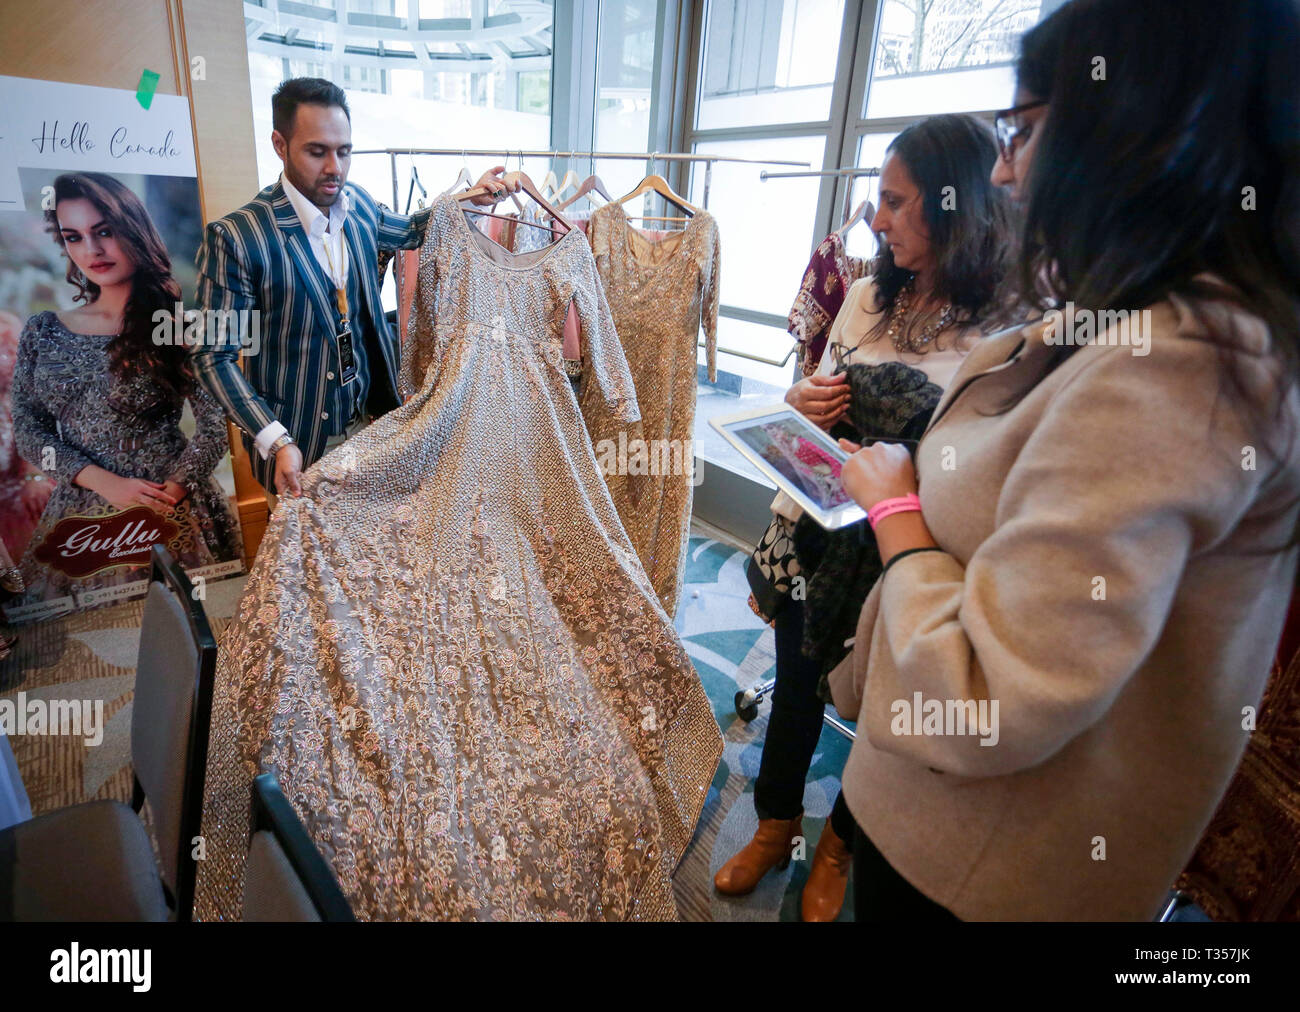 Vancouver Canada 6th Apr 2019 People Look At An Indian Style Wedding Dress During The 4th Bridal Fashion Week In Vancouver Canada April 6 2019 The Annual Bridal Fashion Week Is A